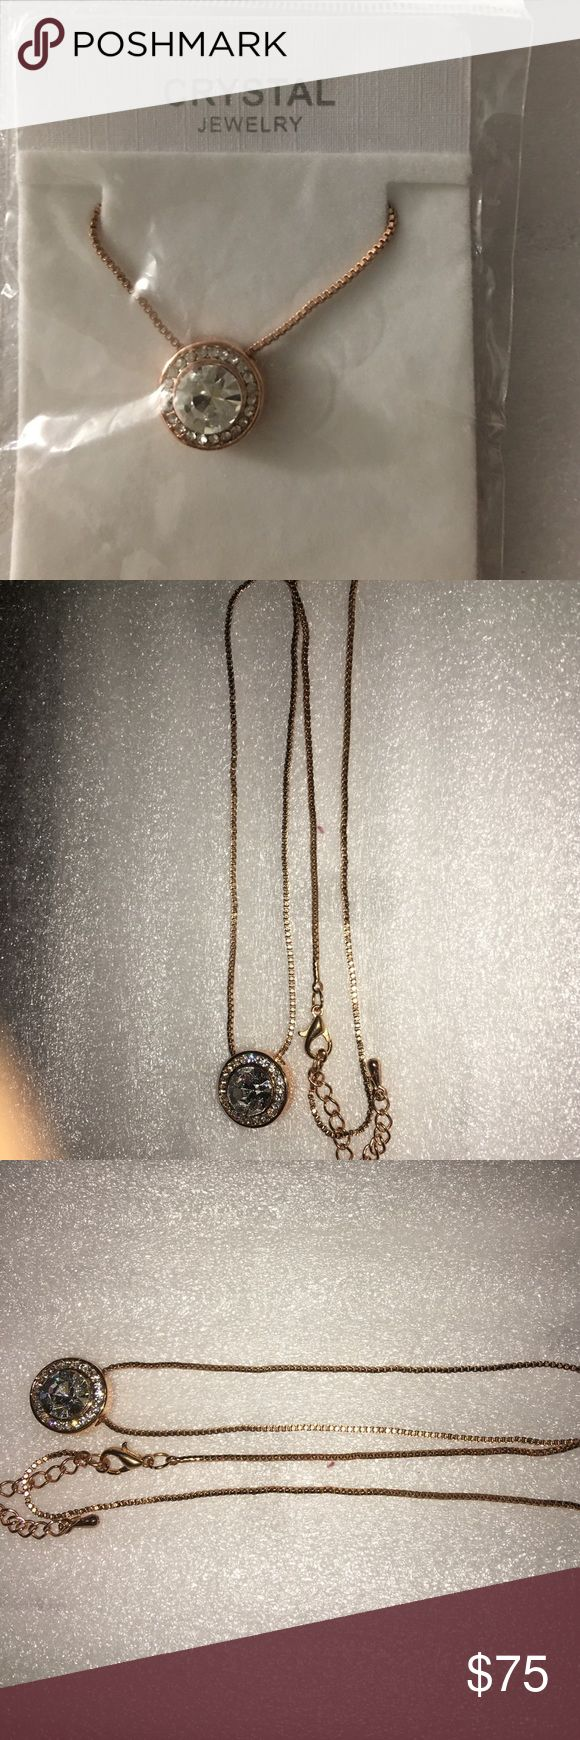 14k gold plated necklace, crystal & gold pendant Beautiful 14k gold plated necklace & crystal pendant. Brand new, just make an offer I will give you good price. Jewelry Necklaces